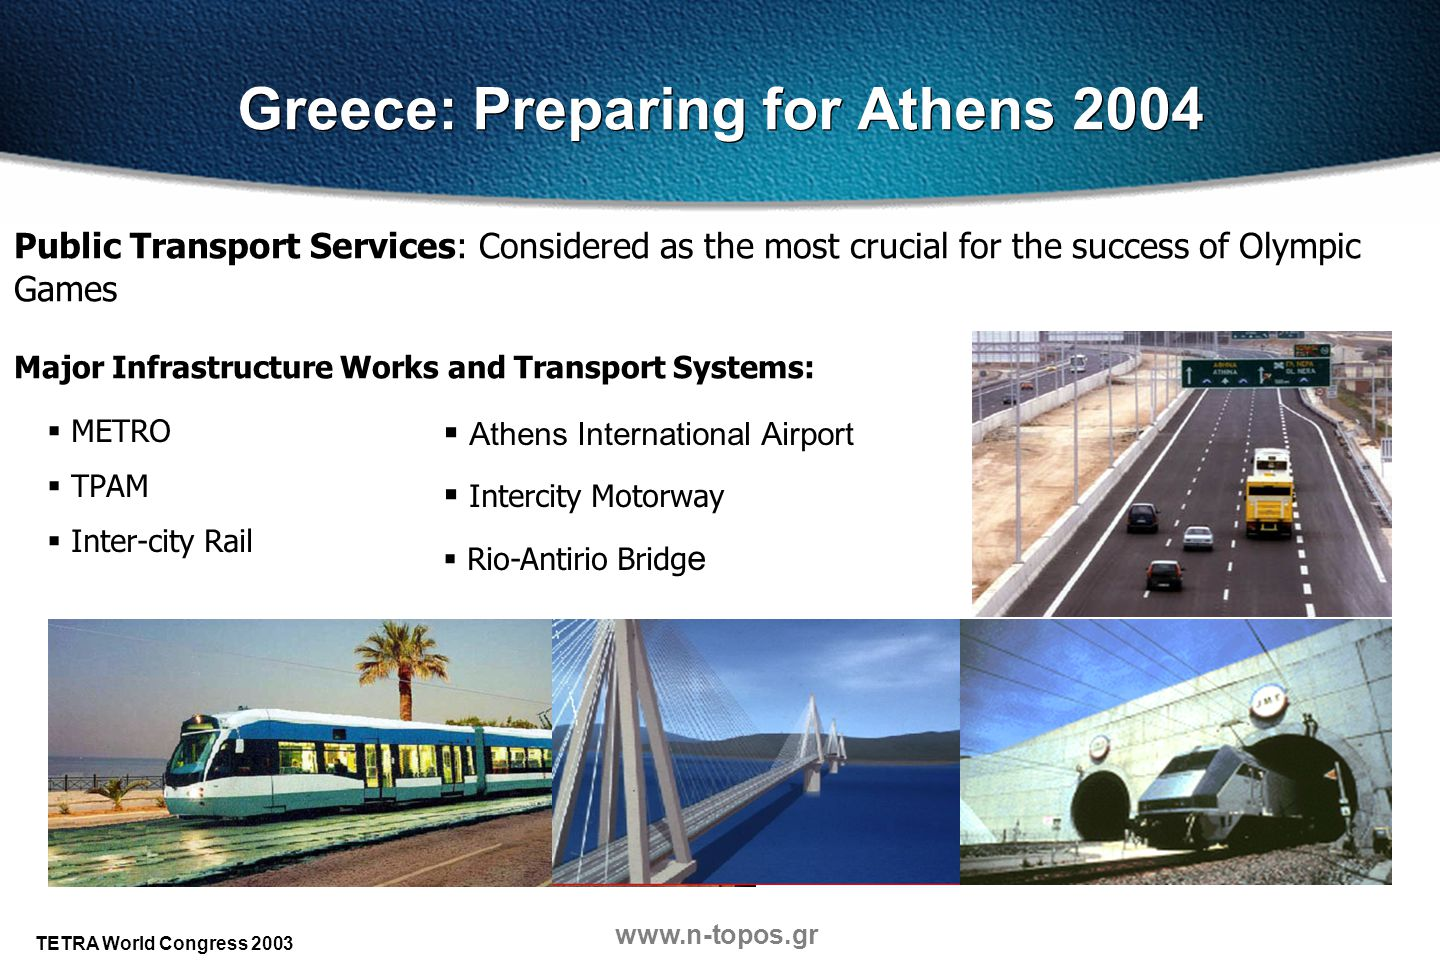 Greece: Preparing for Athens 2004